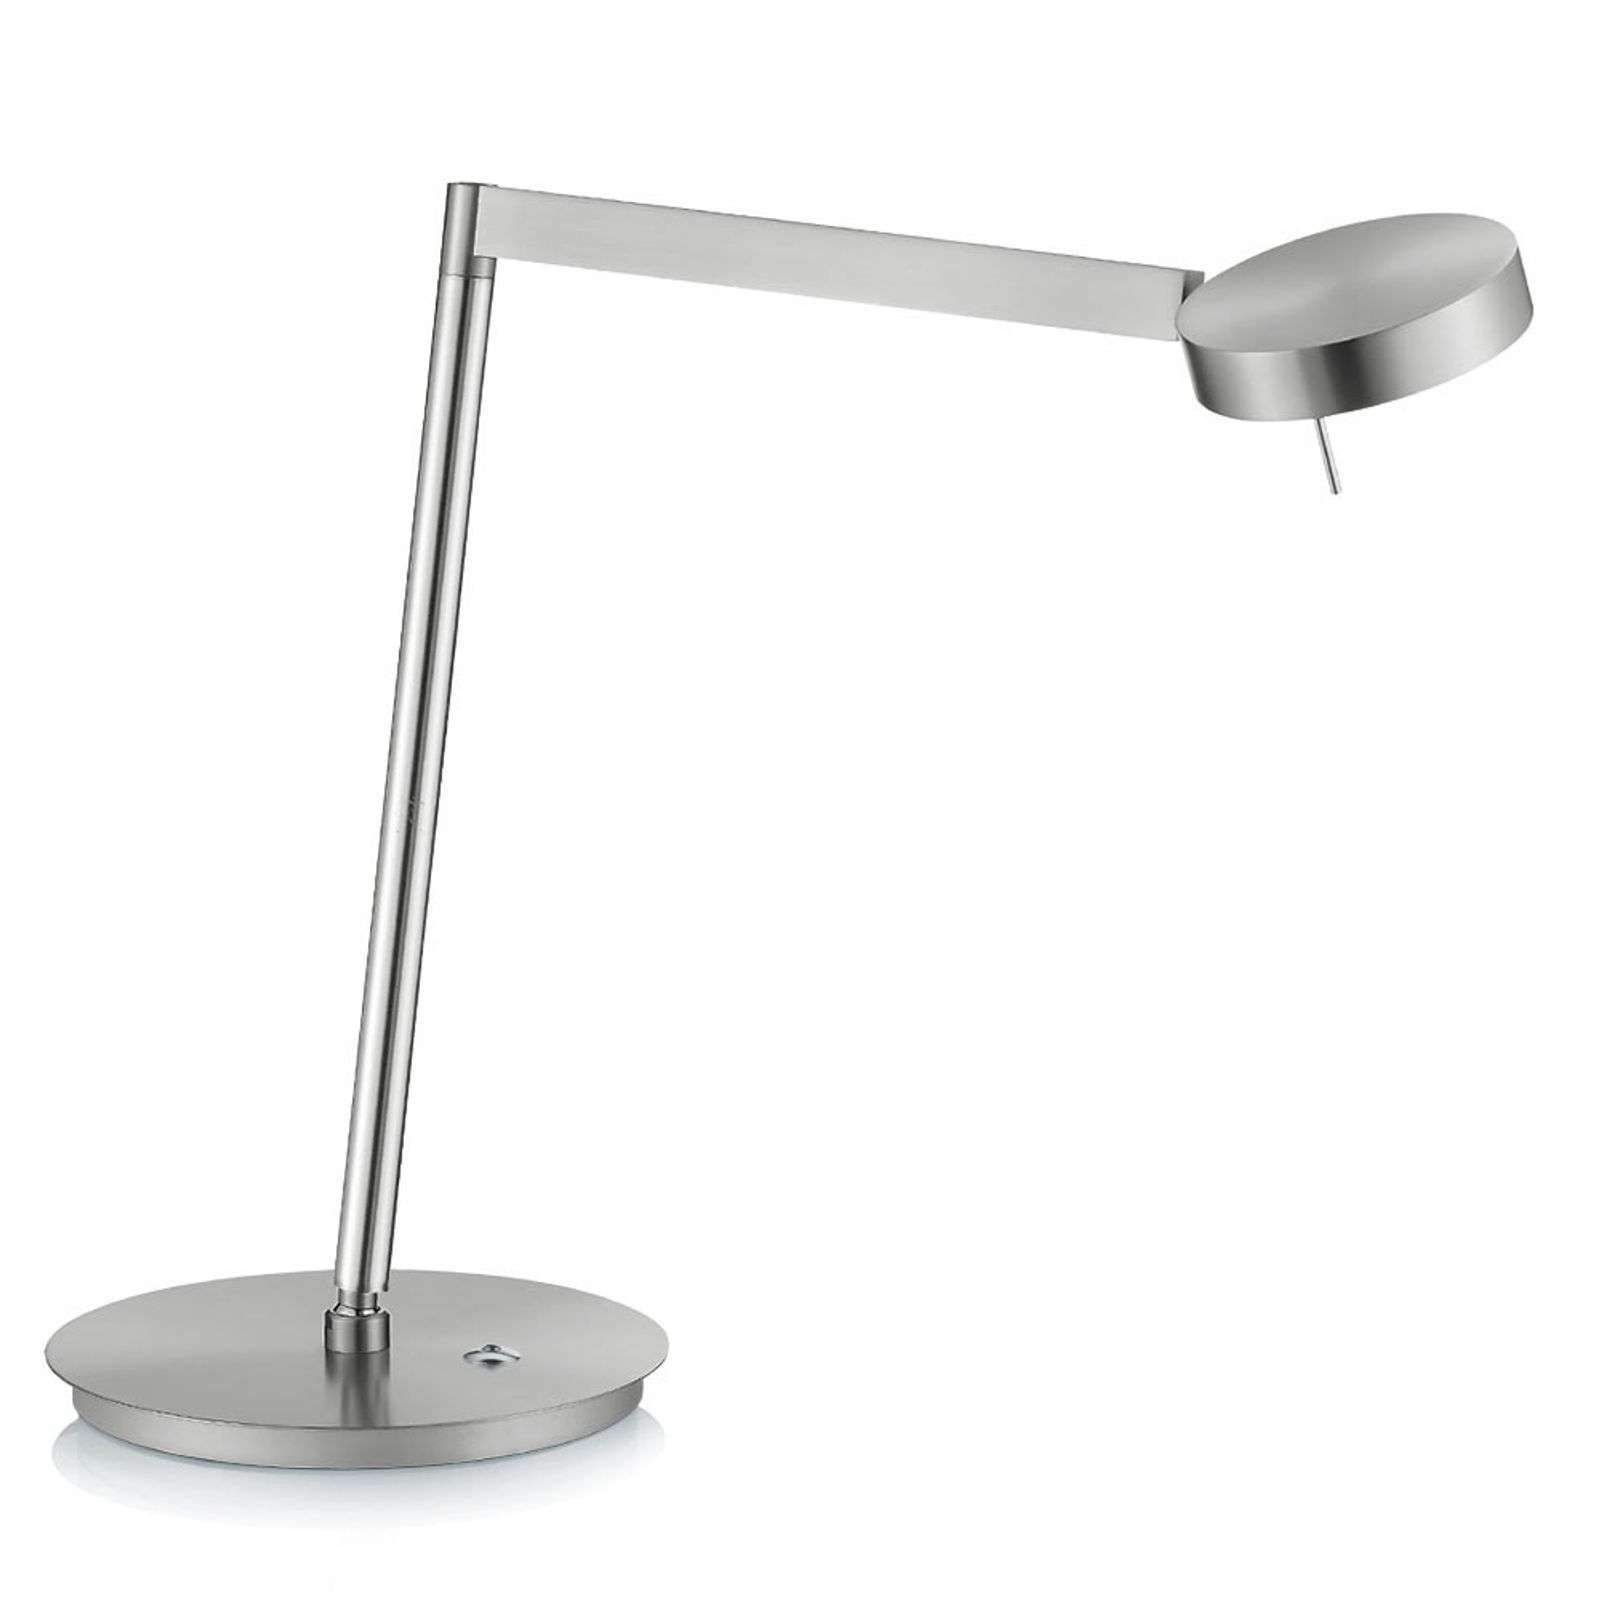 Lampe à poser LED Reading nickel variateur tactile